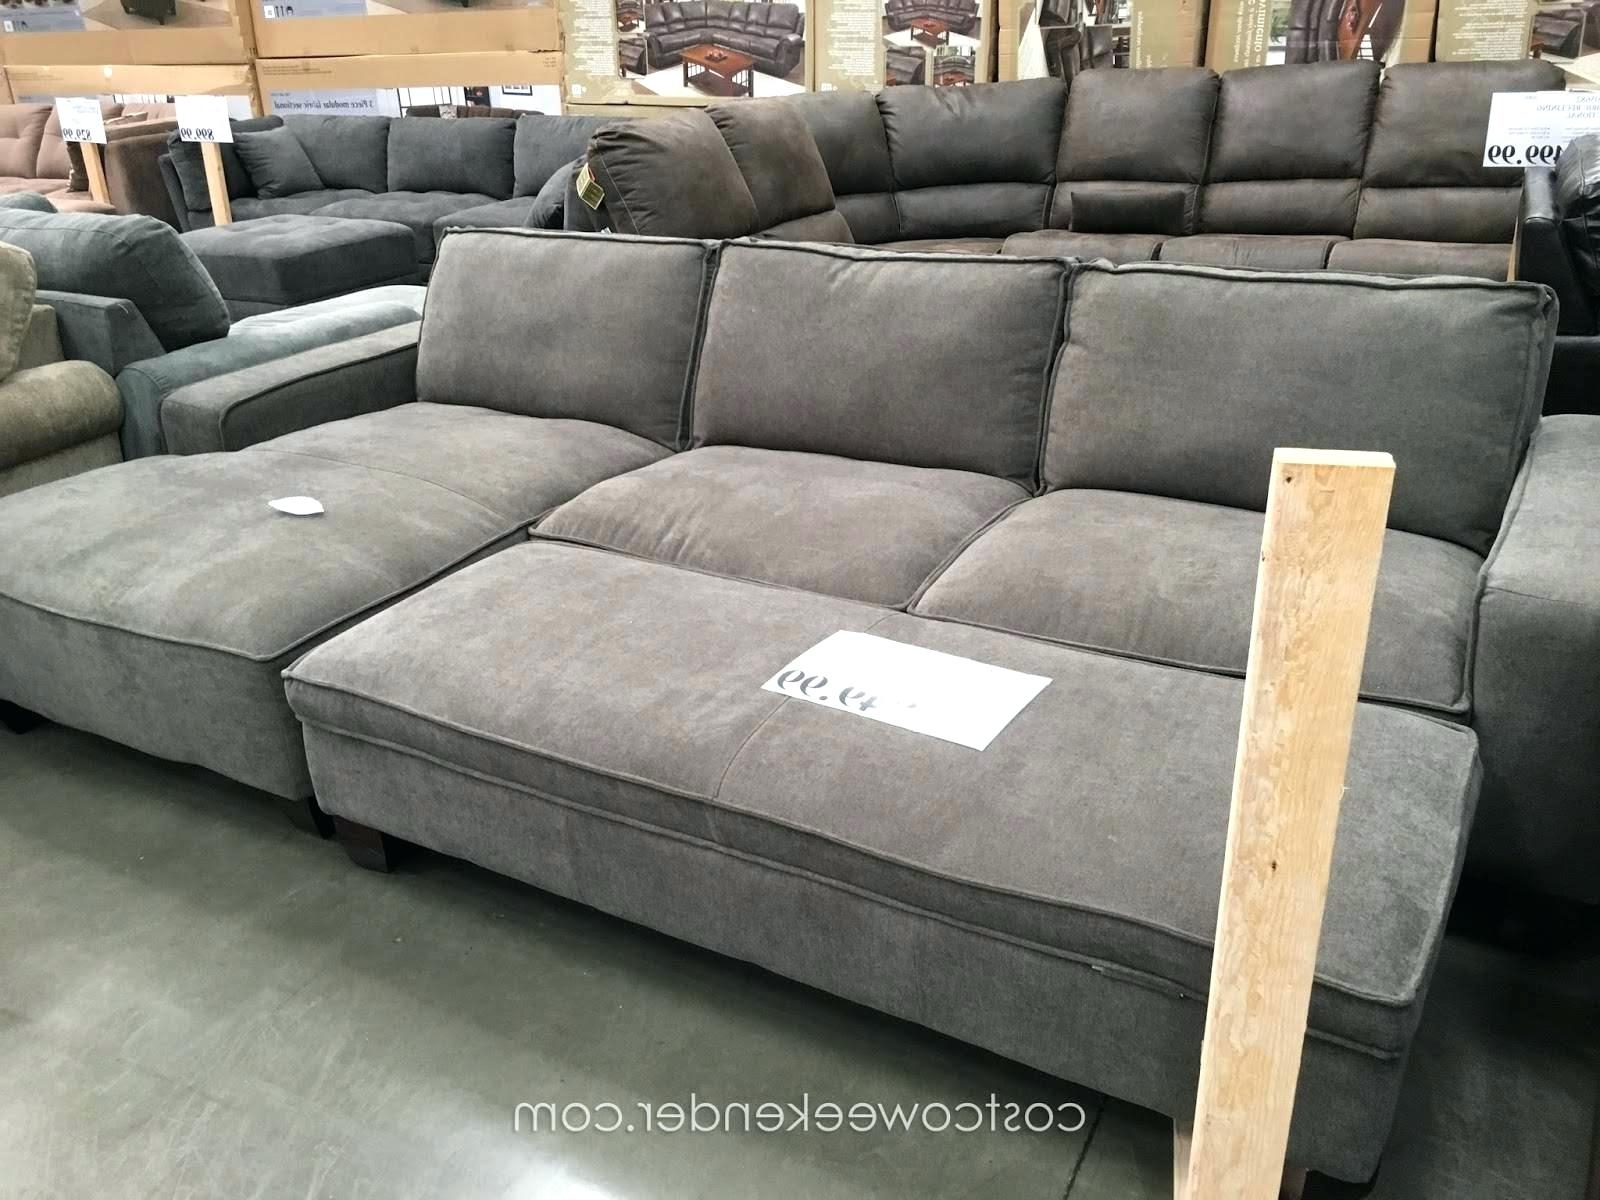 Latest Berkline Sofa Recliner Costco And Loveseat – Jasonatavastrealty In Berkline Sofas (View 9 of 20)